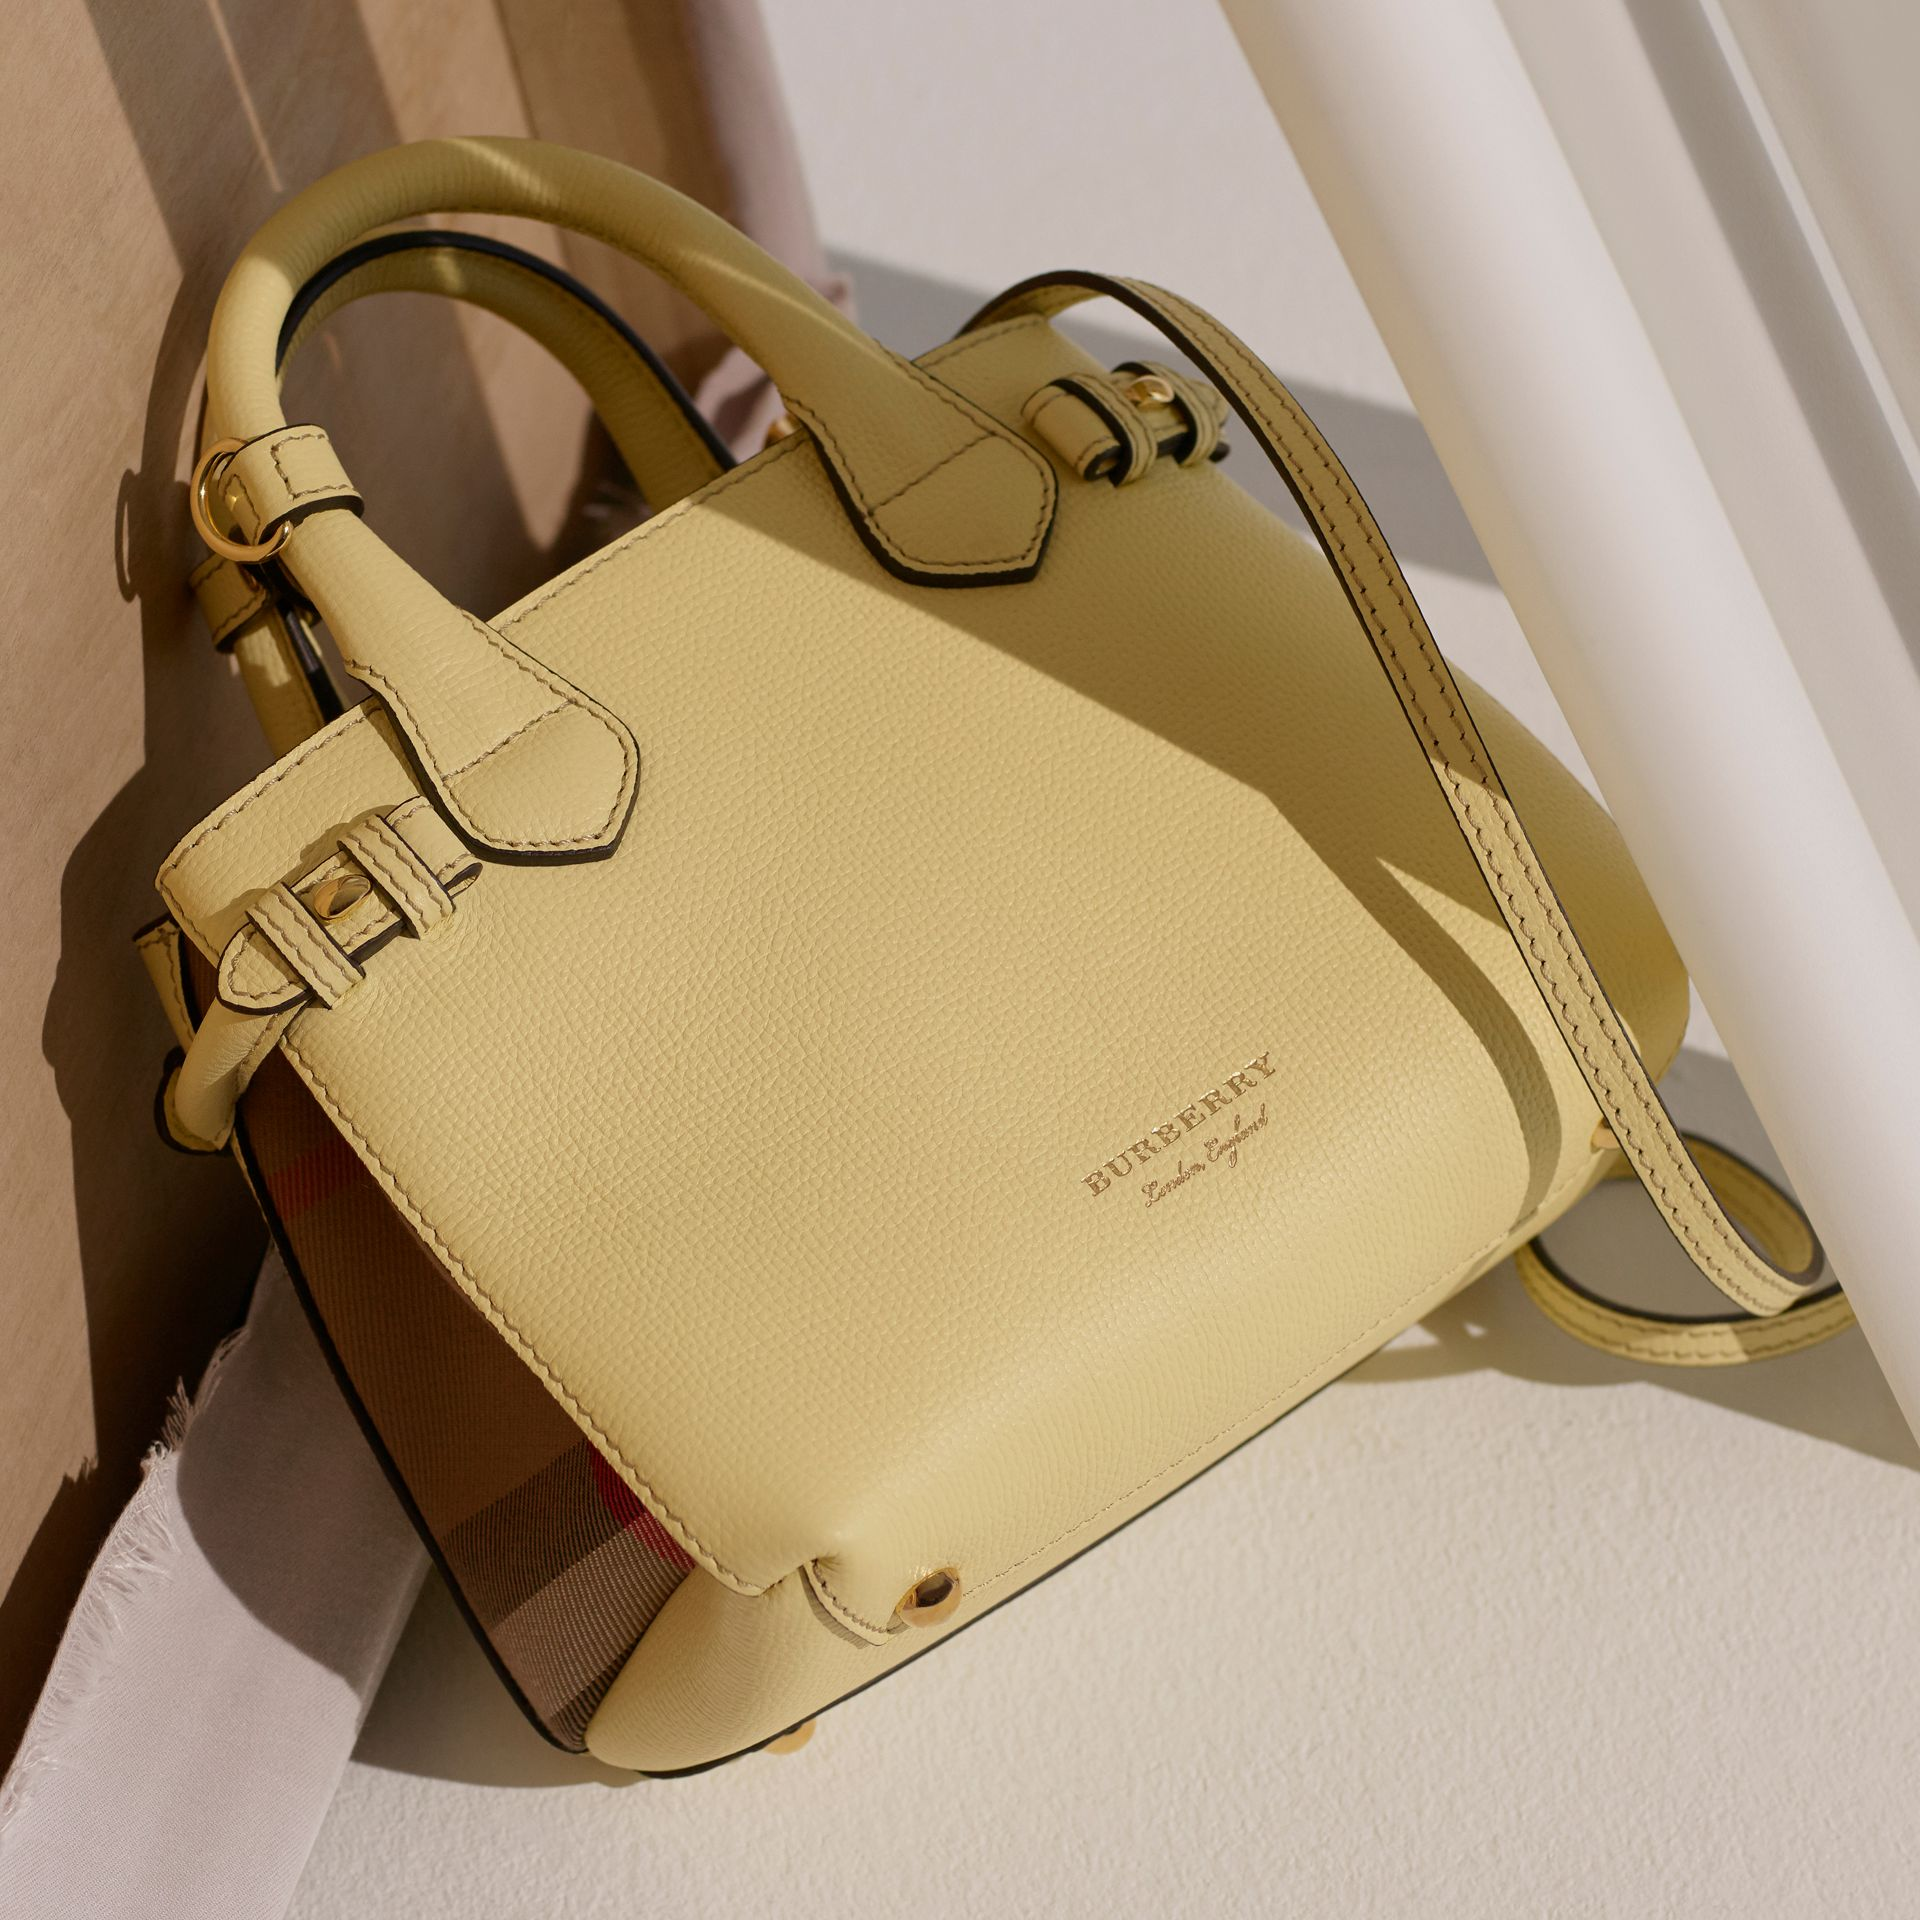 Borsa The Baby Banner in pelle con motivo House check (Giallo Camomilla) - Donna | Burberry - immagine della galleria 7